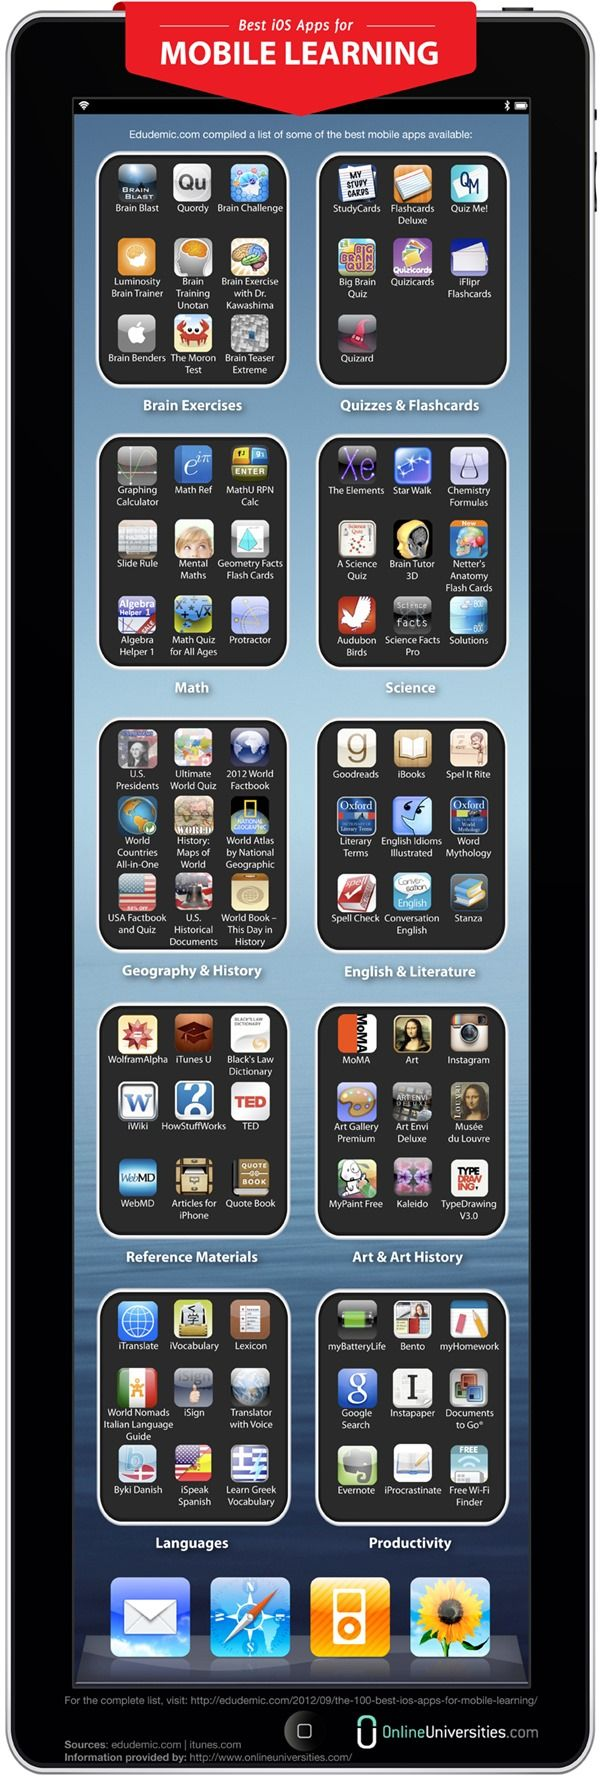 Best iOS Apps for Mobile Learning